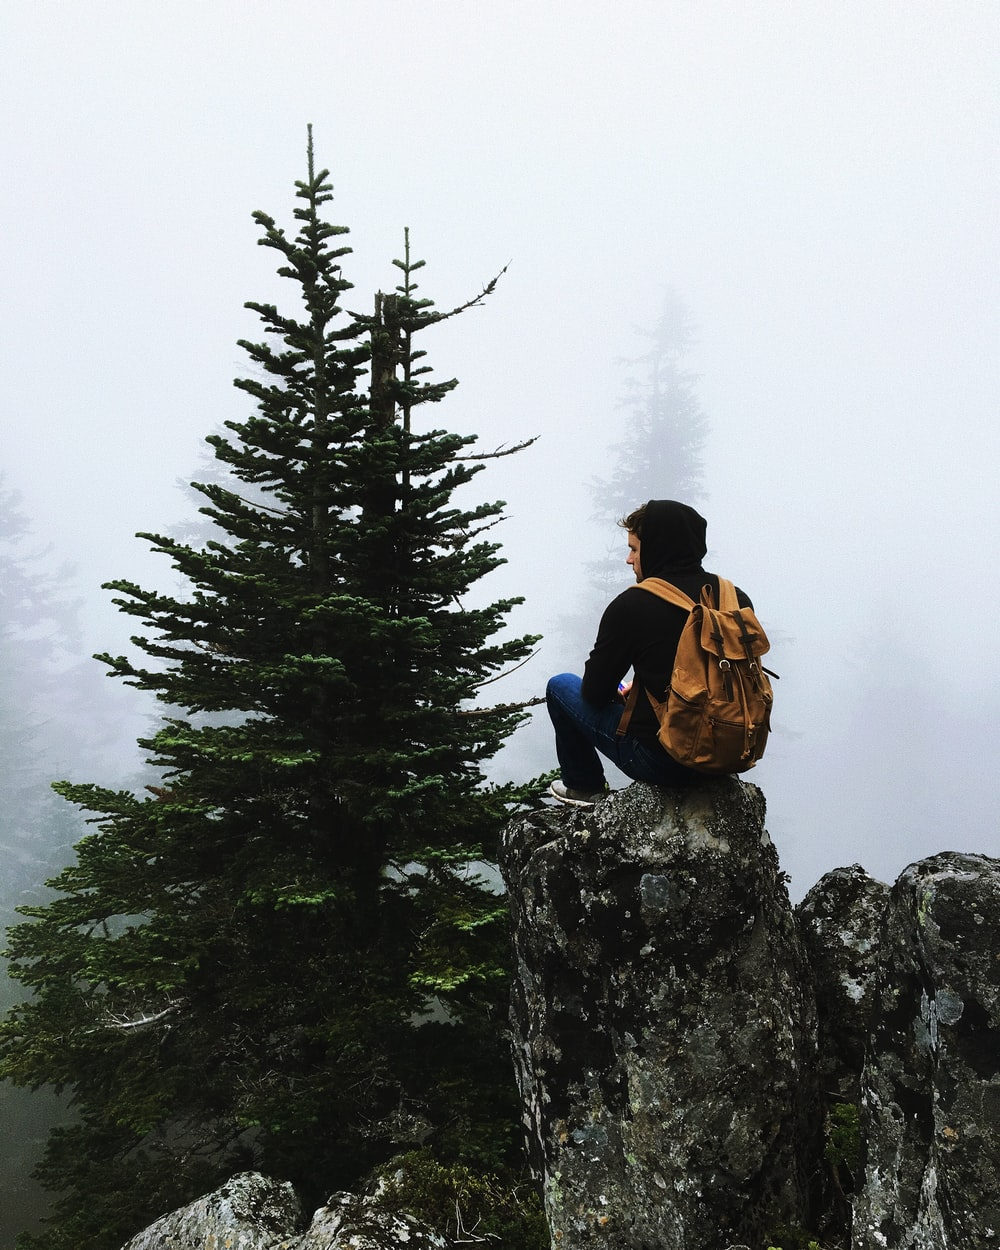 person sitting on rock facing tree